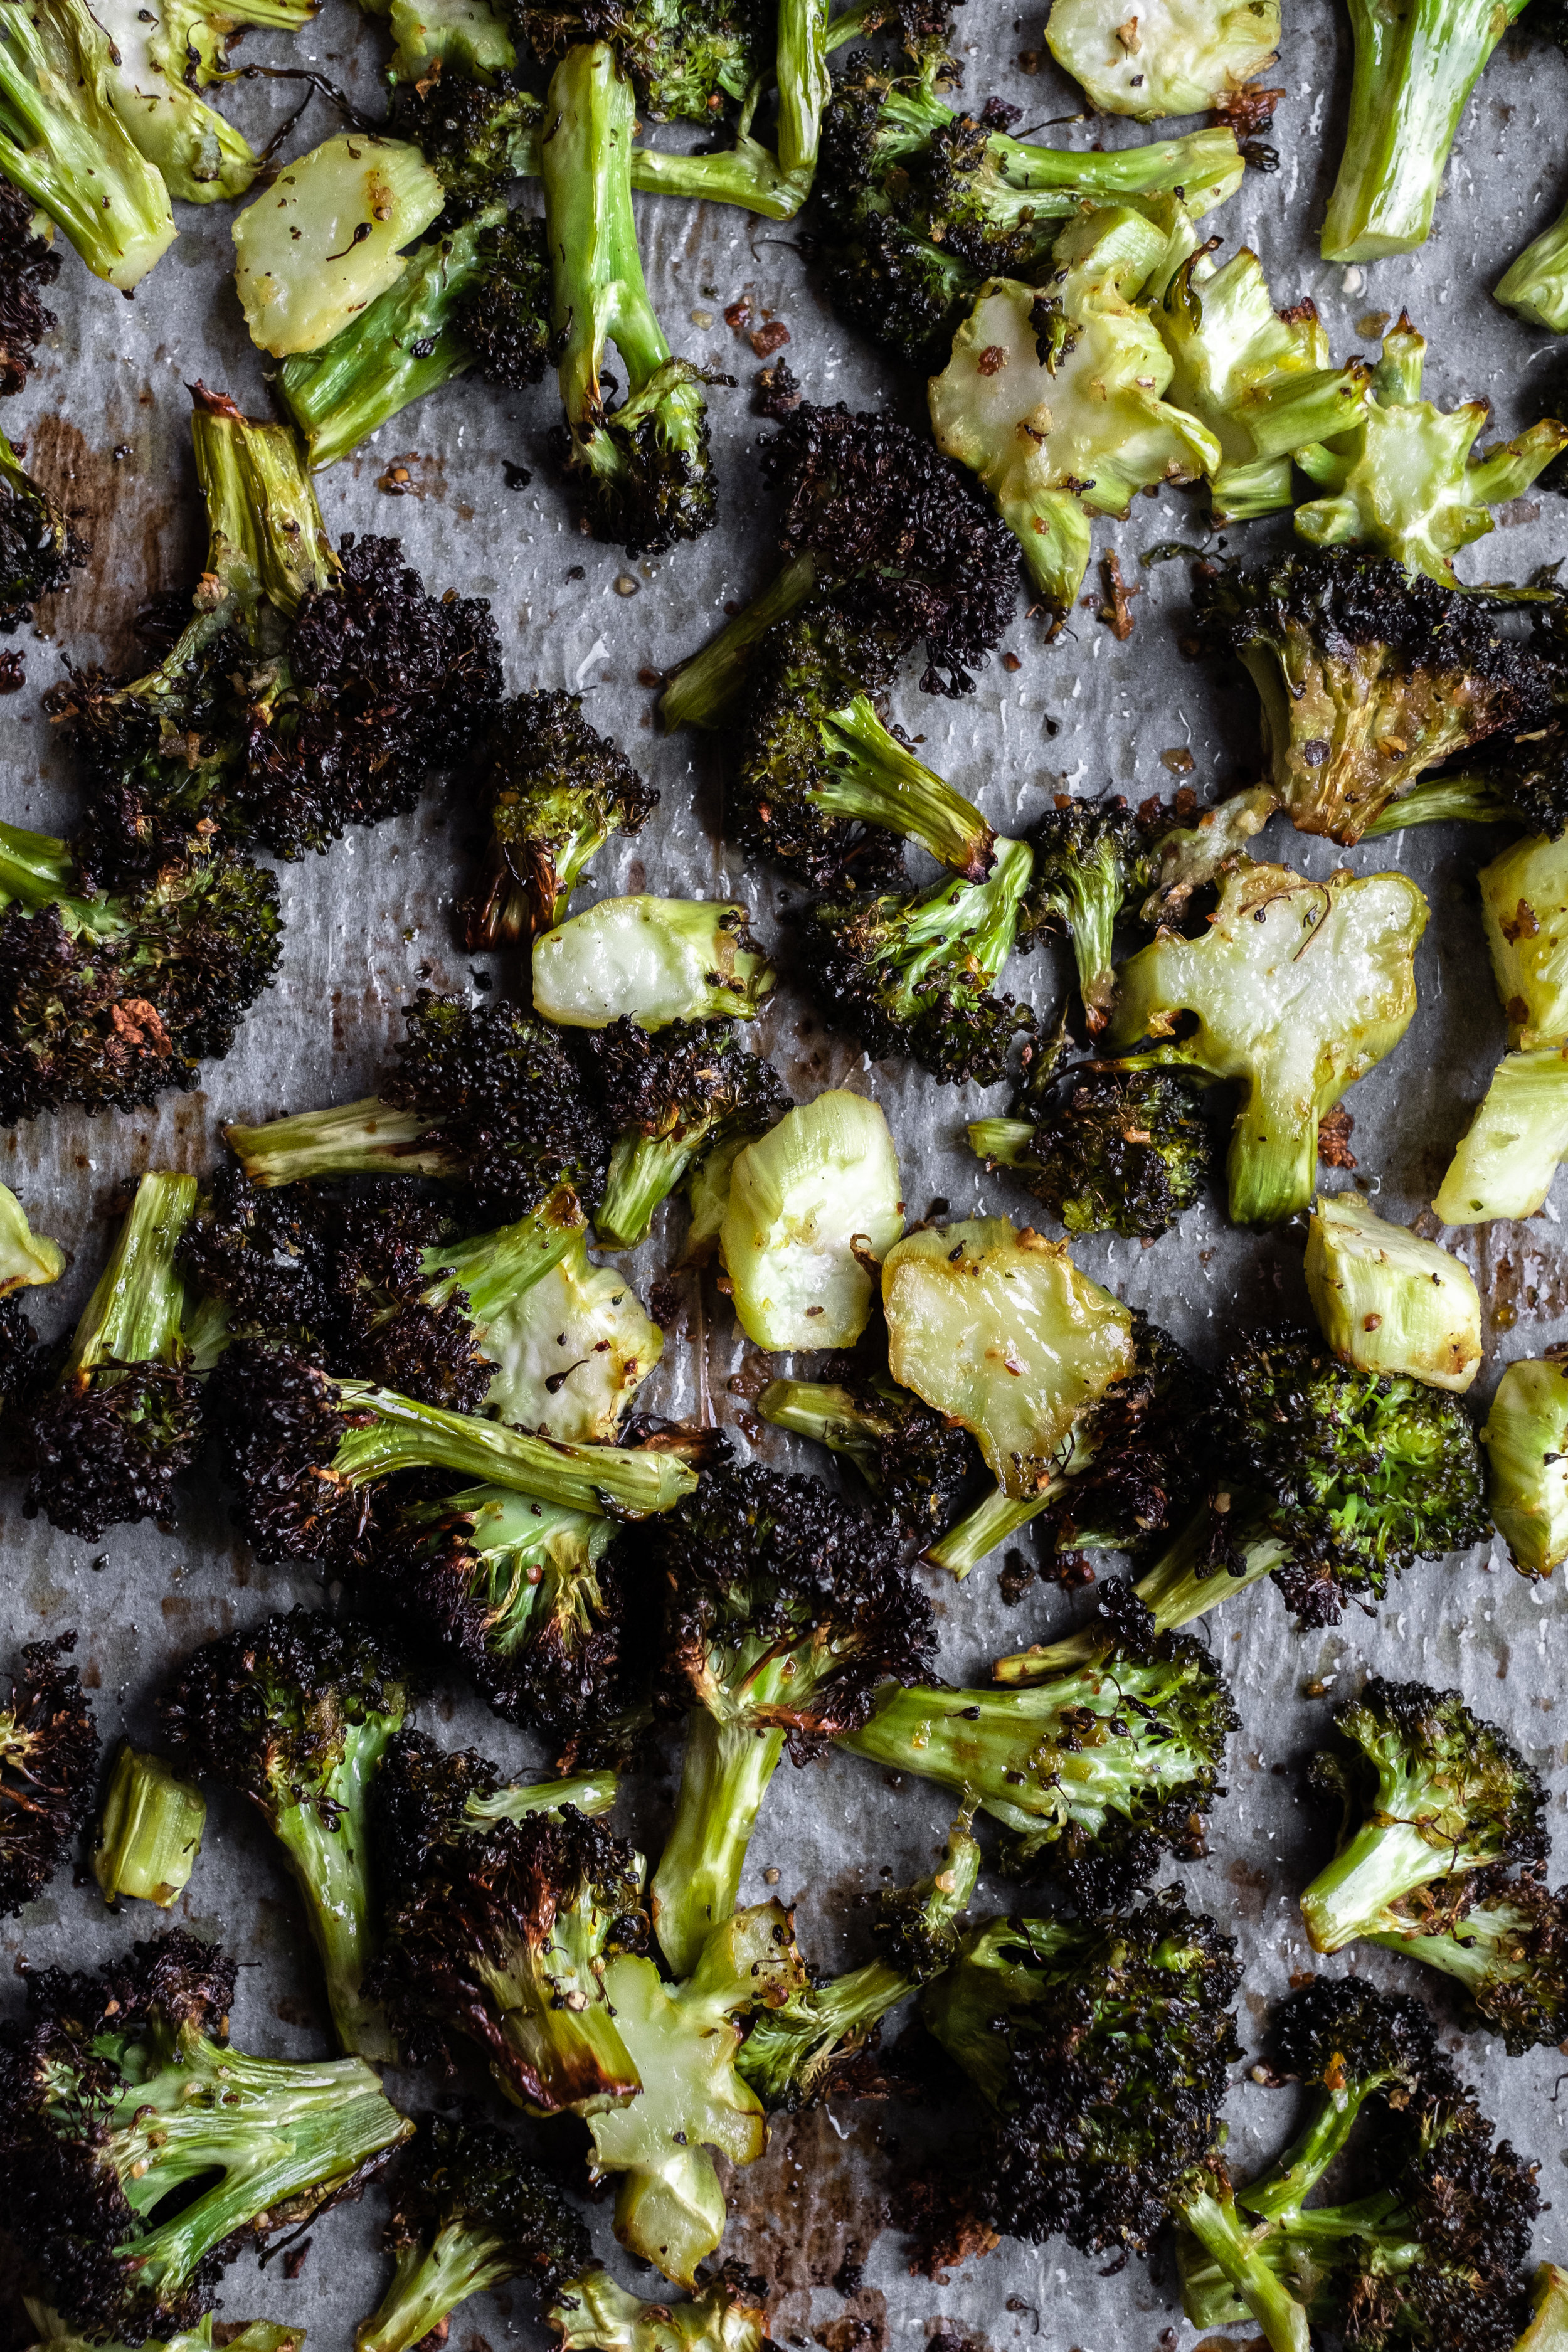 oven roasted broccoli with garlic and lemon